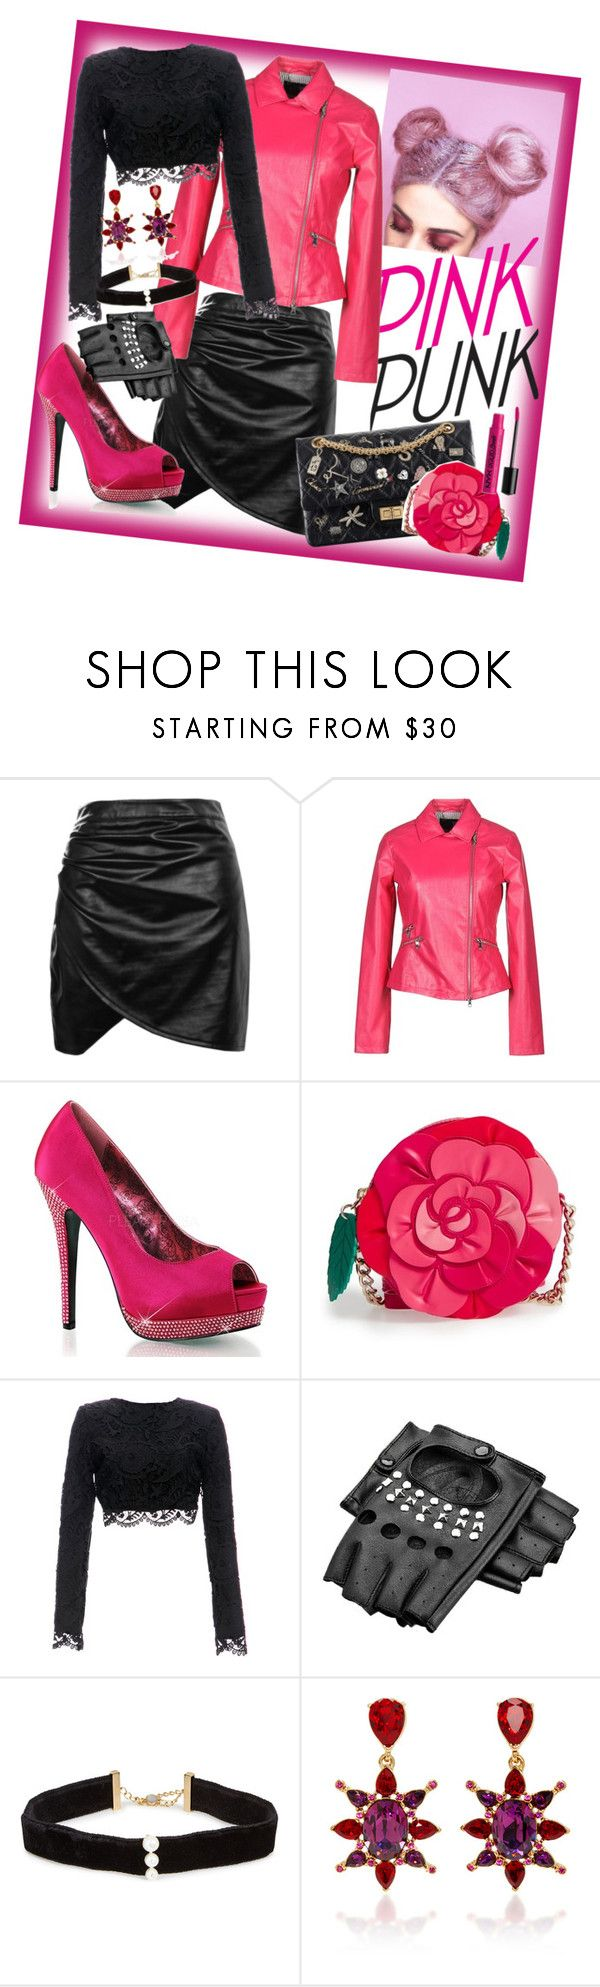 """""""Pink Punk"""" by velvy ❤ liked on Polyvore featuring Boohoo, Armani Jeans, Kate Spade, Stone_Cold_Fox, Anissa Kermiche, Oscar de la Renta and NYX"""